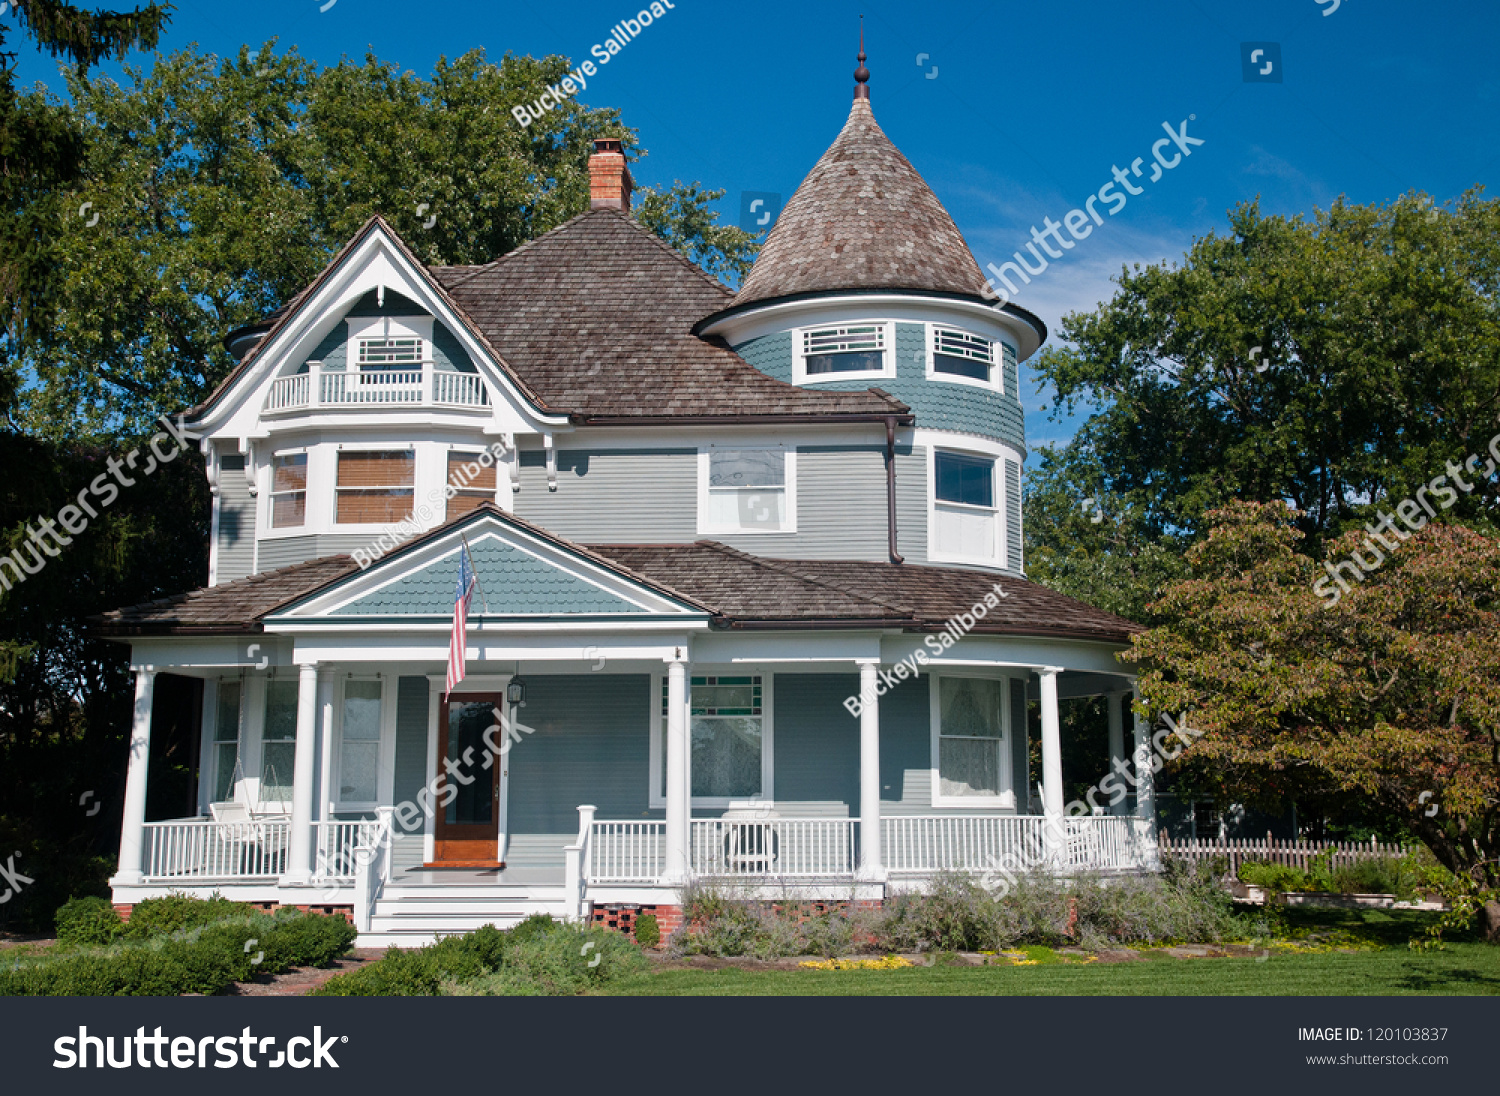 Beautiful gray traditional victorian house american stock for Beautiful homes in america